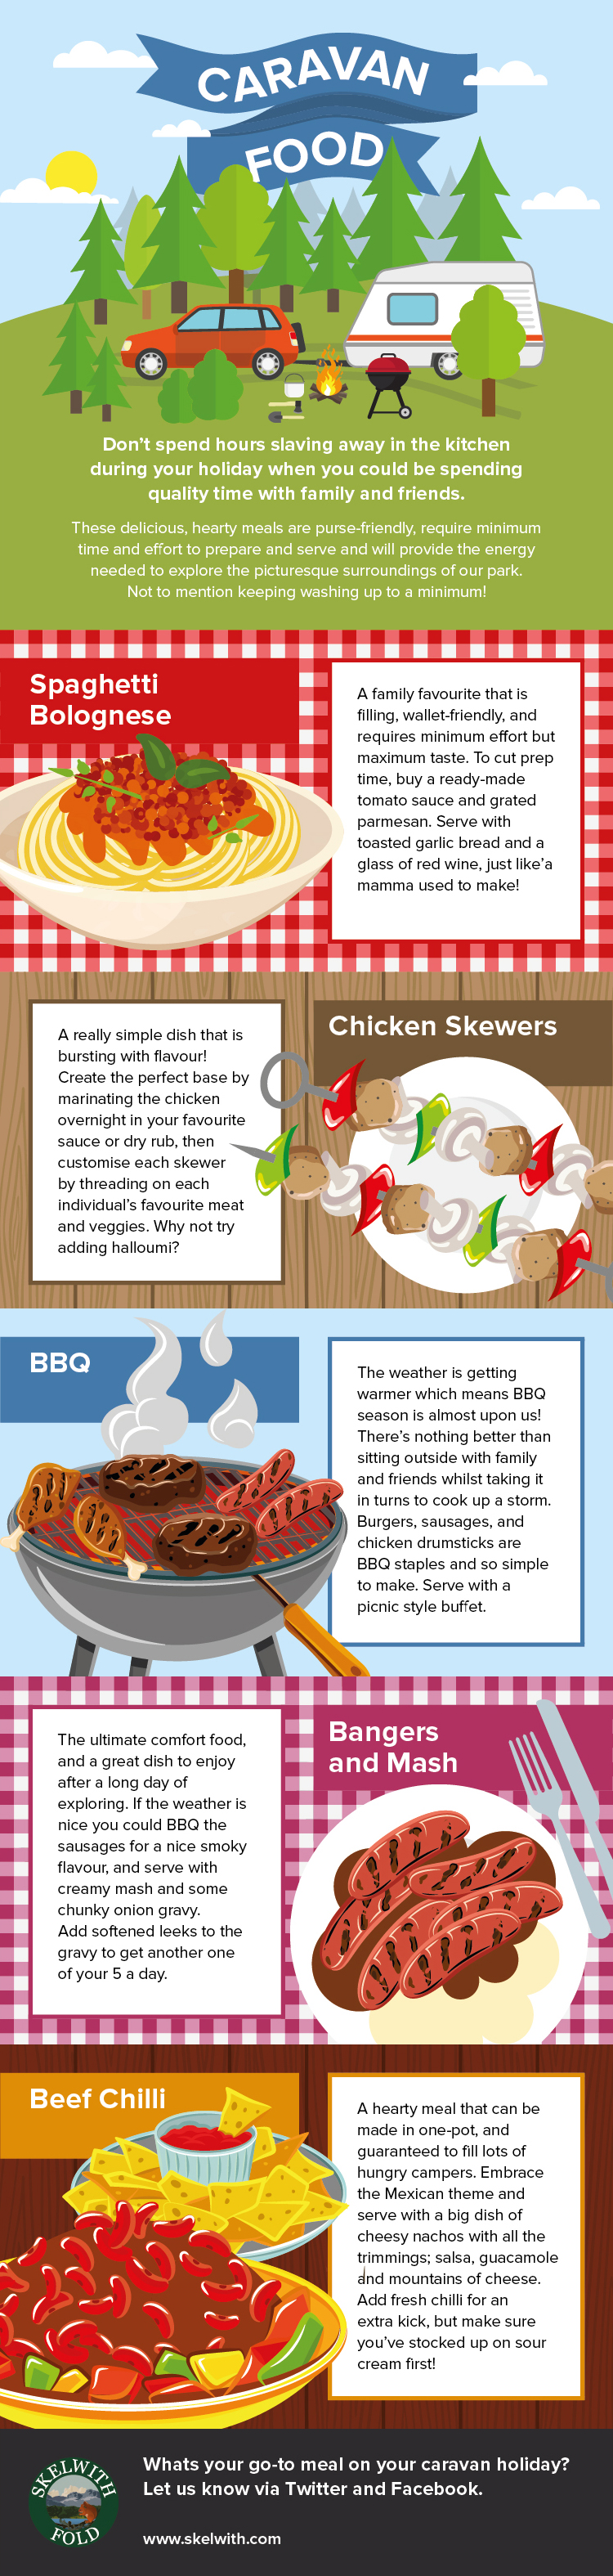 Easy Caravan Food Ideas by Skelwith Fold